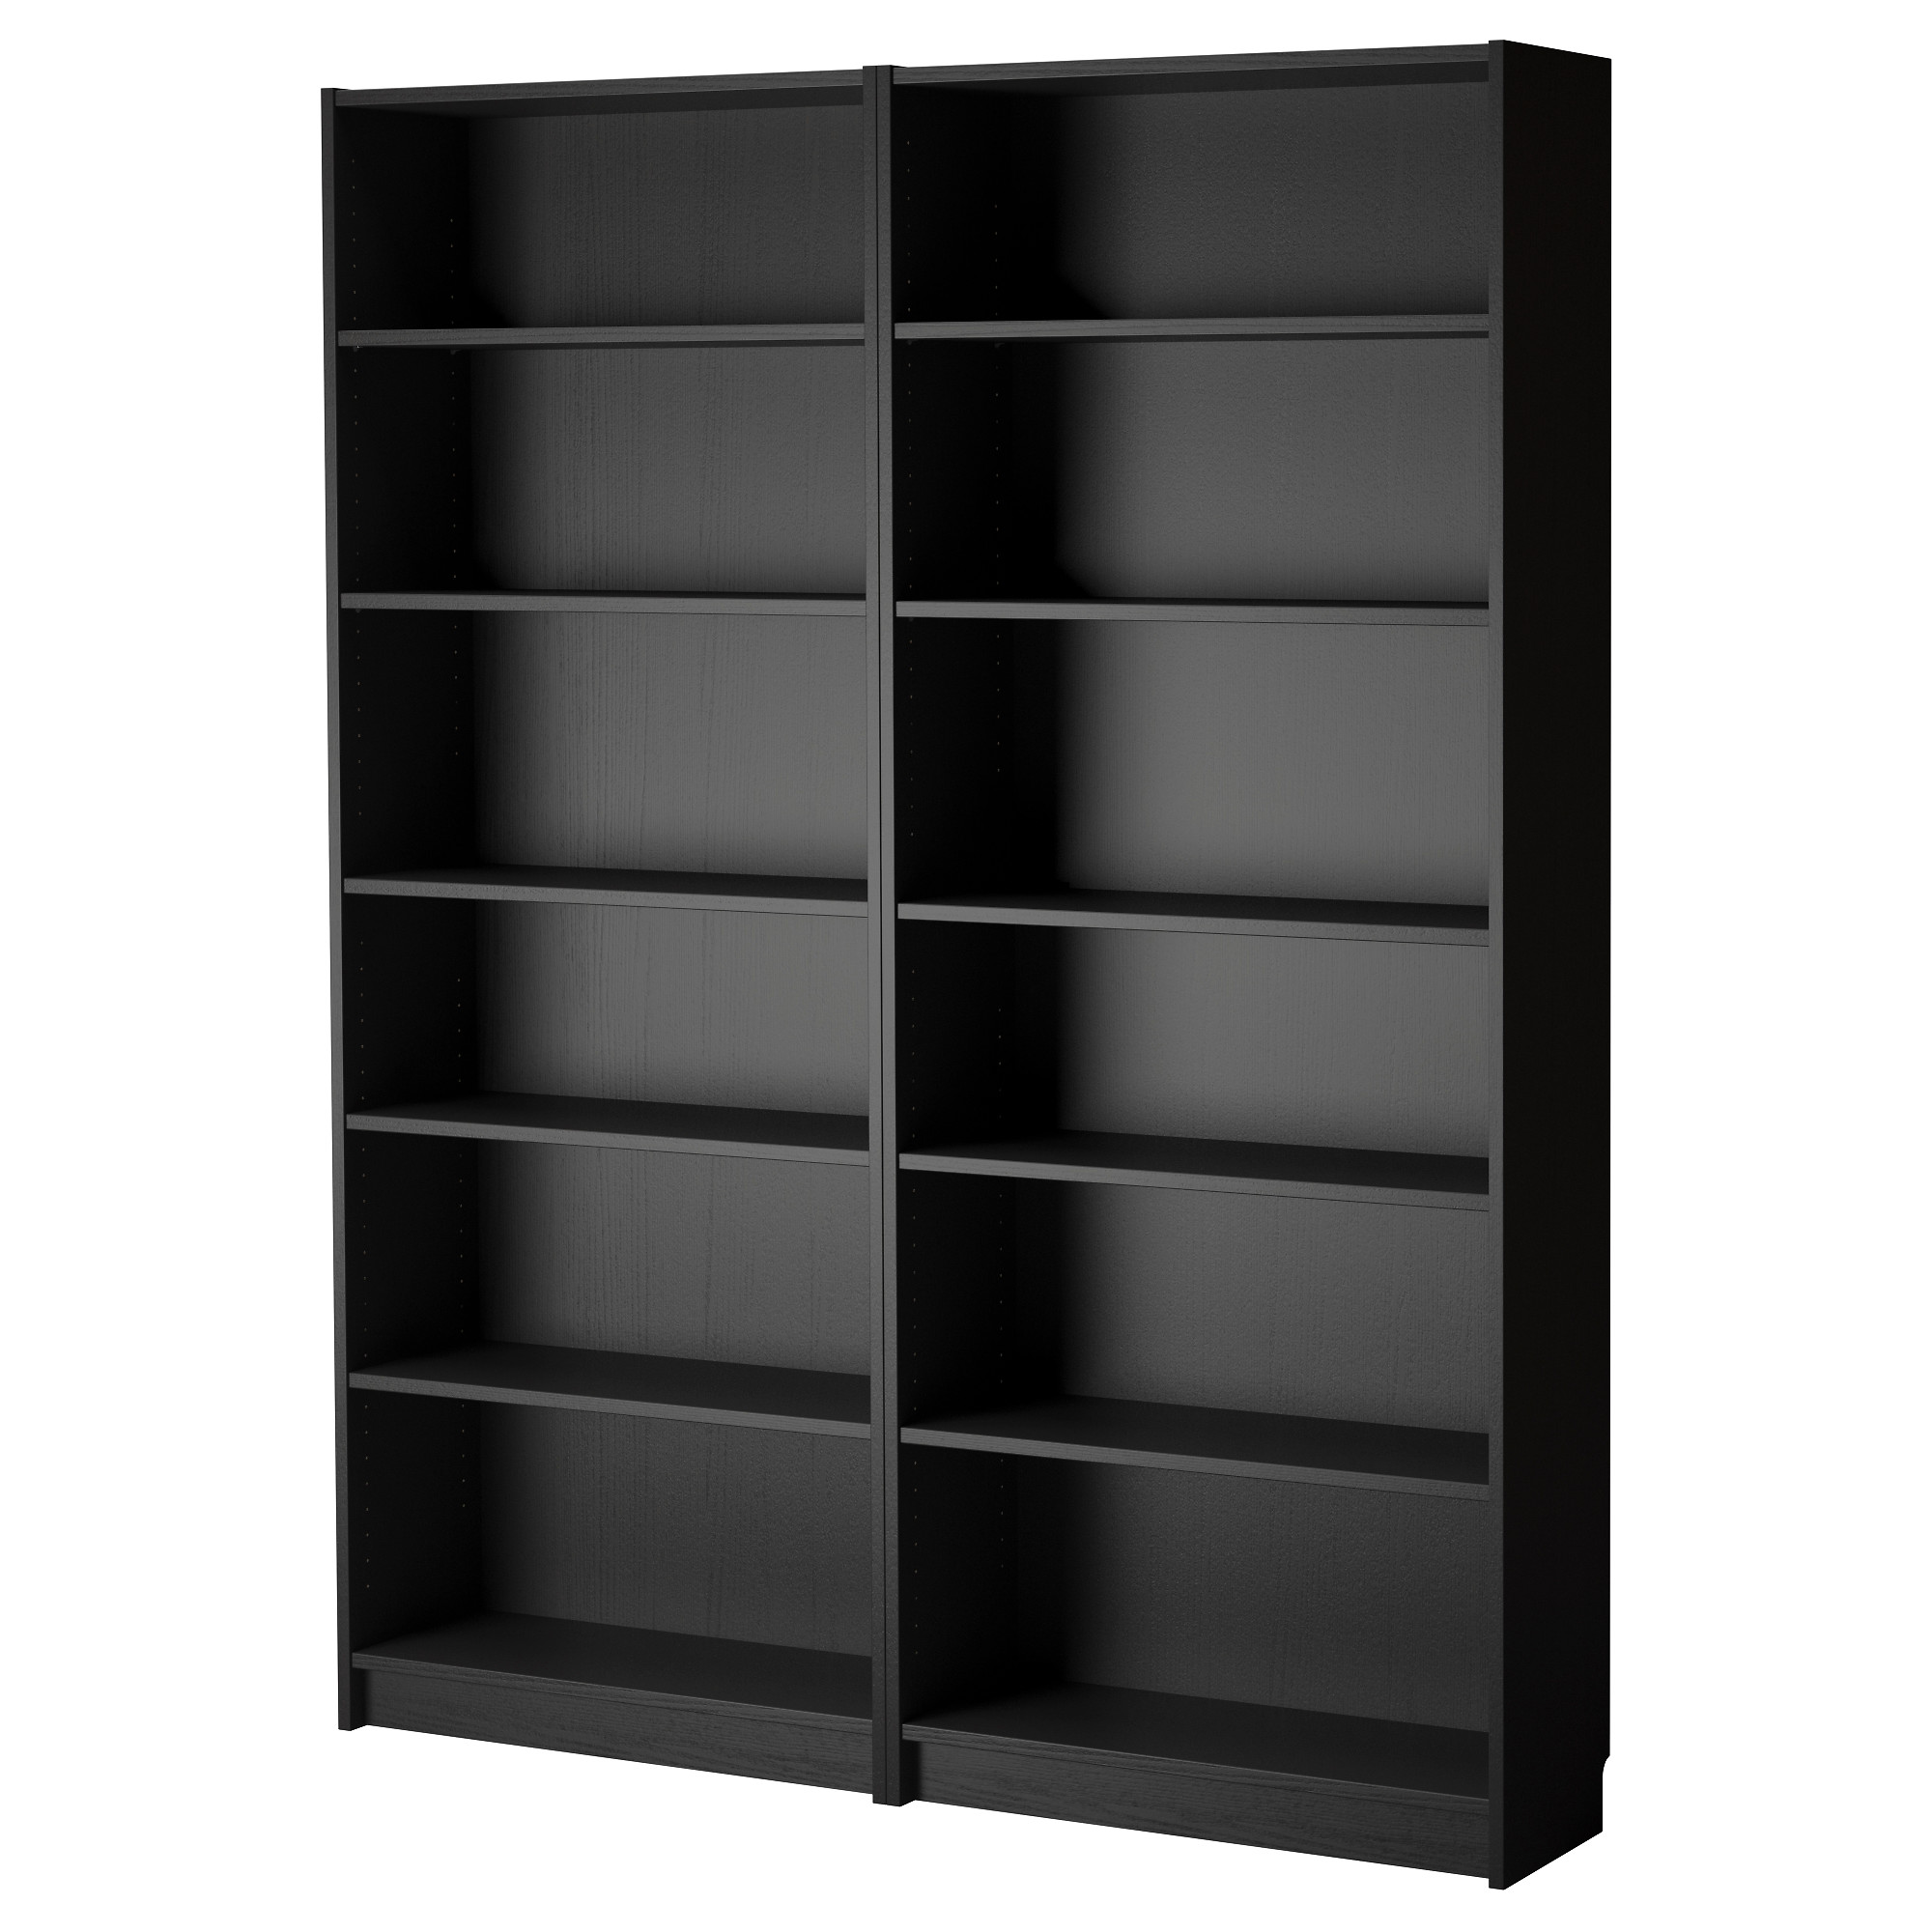 bookcases ikea billy bookcase adjustable shelves; adapt space between shelves  according to your ZKJWRXQ